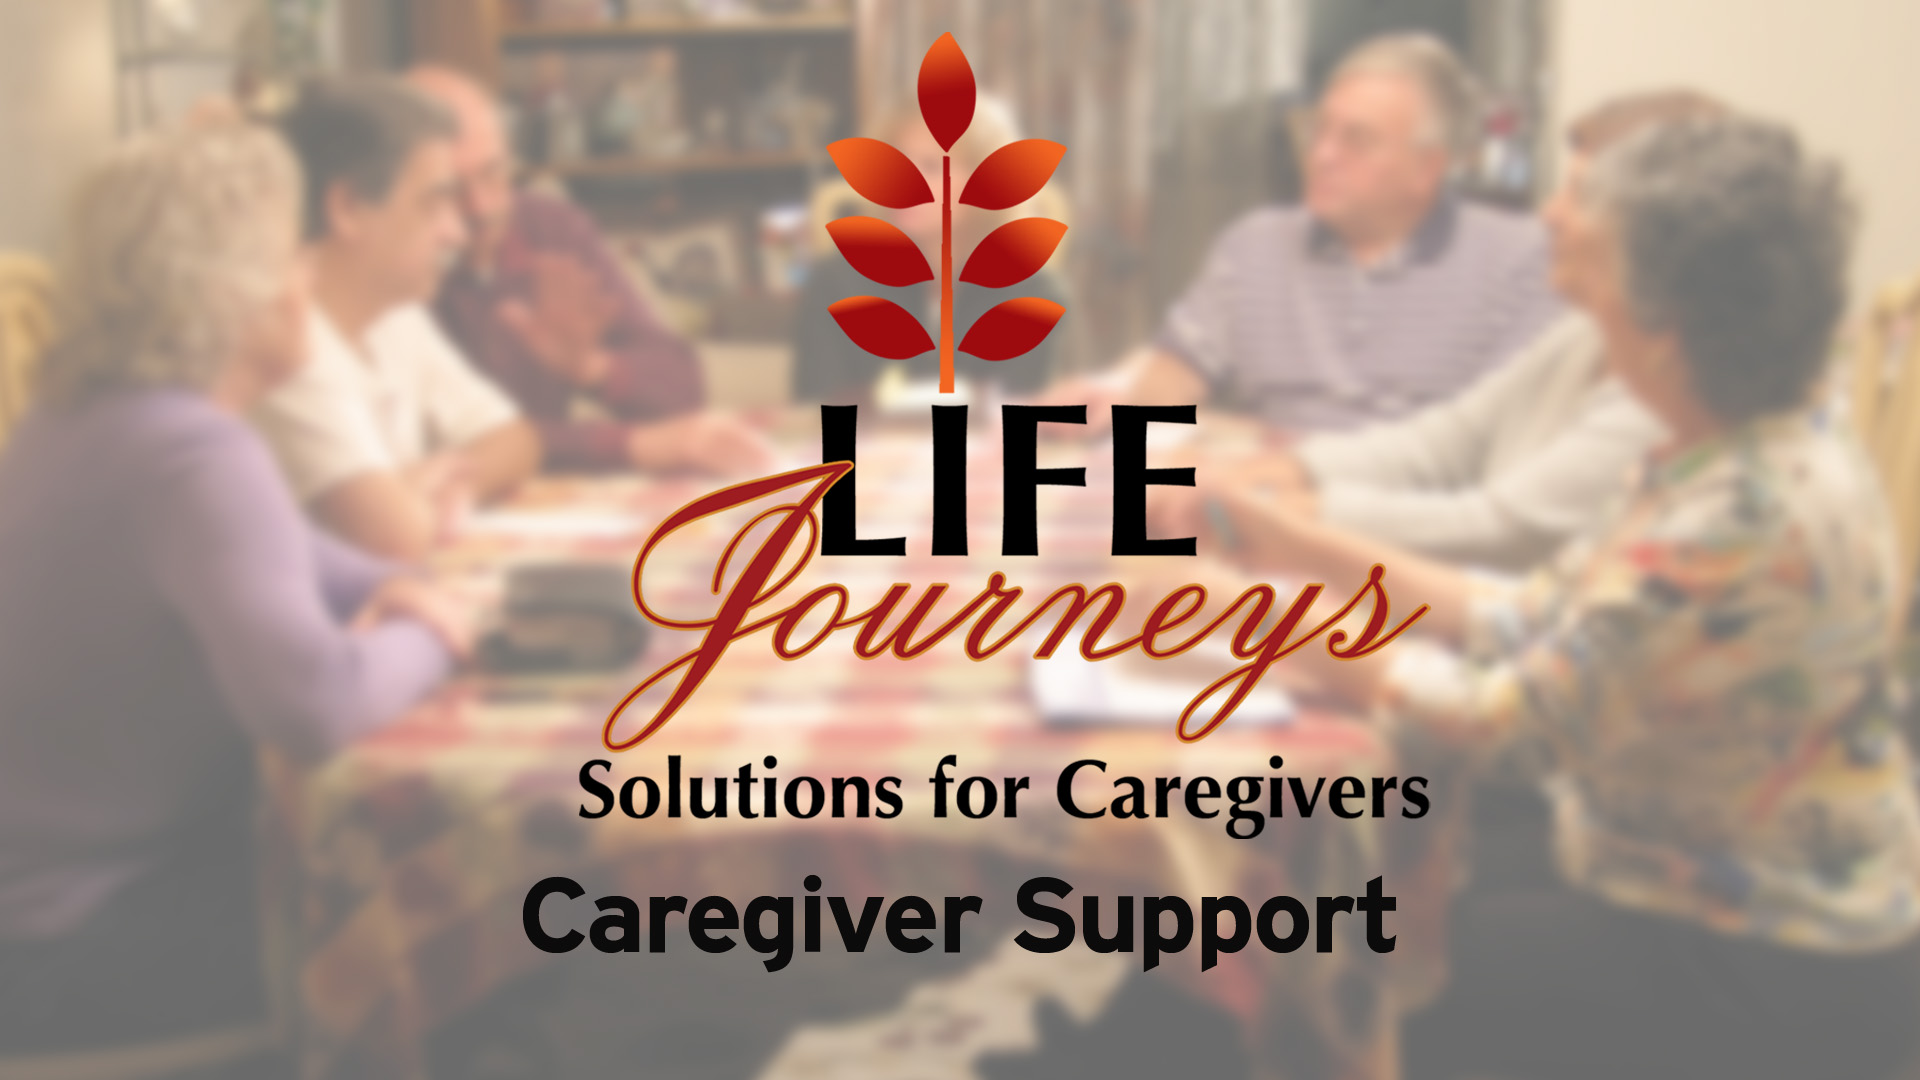 Life Journeys: Caregiver Support